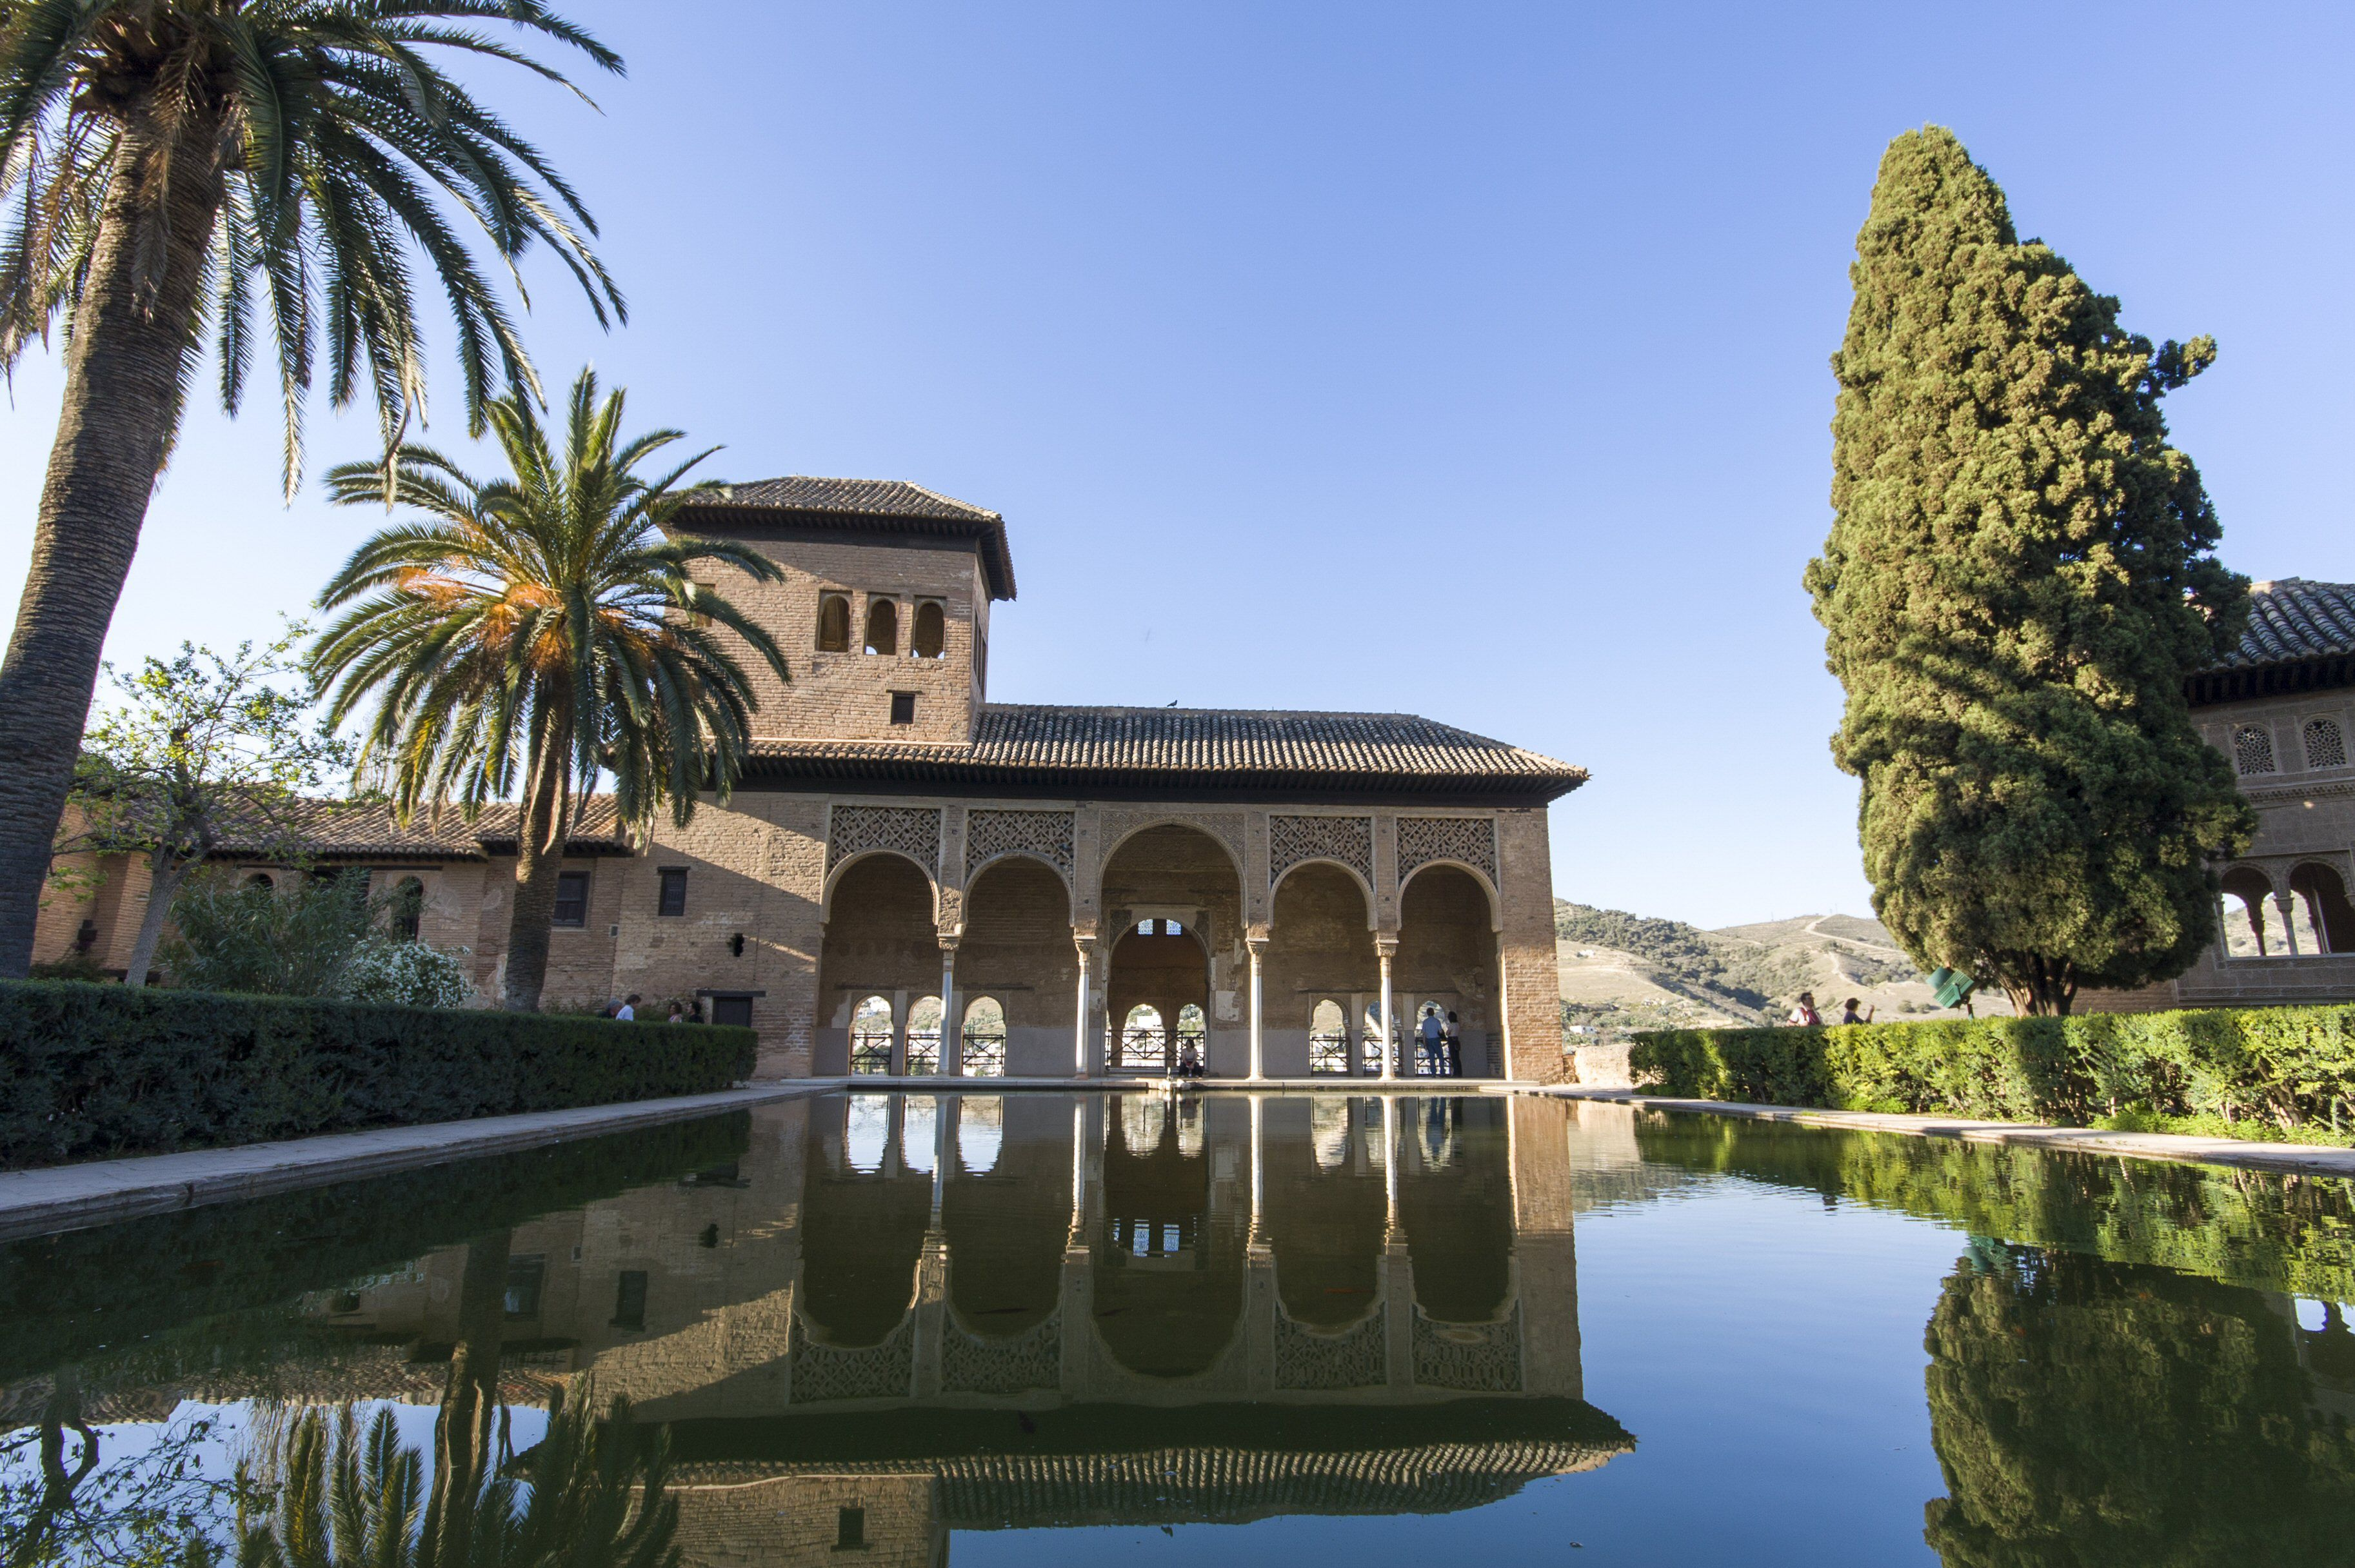 Reflecting Pool and Portico with palm trees